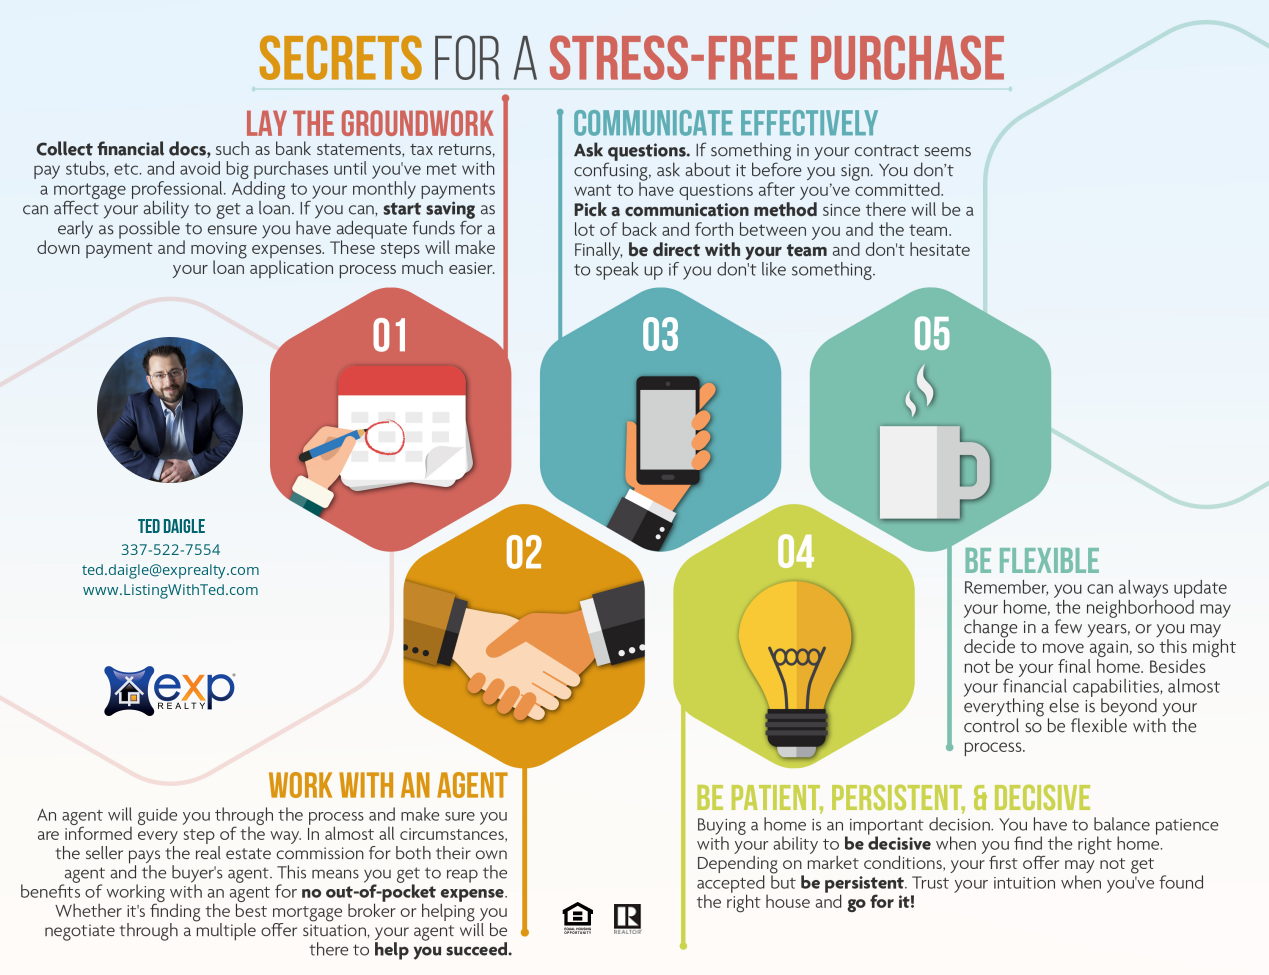 5 SECRETS OF A STRESS-FREE PURCHASE